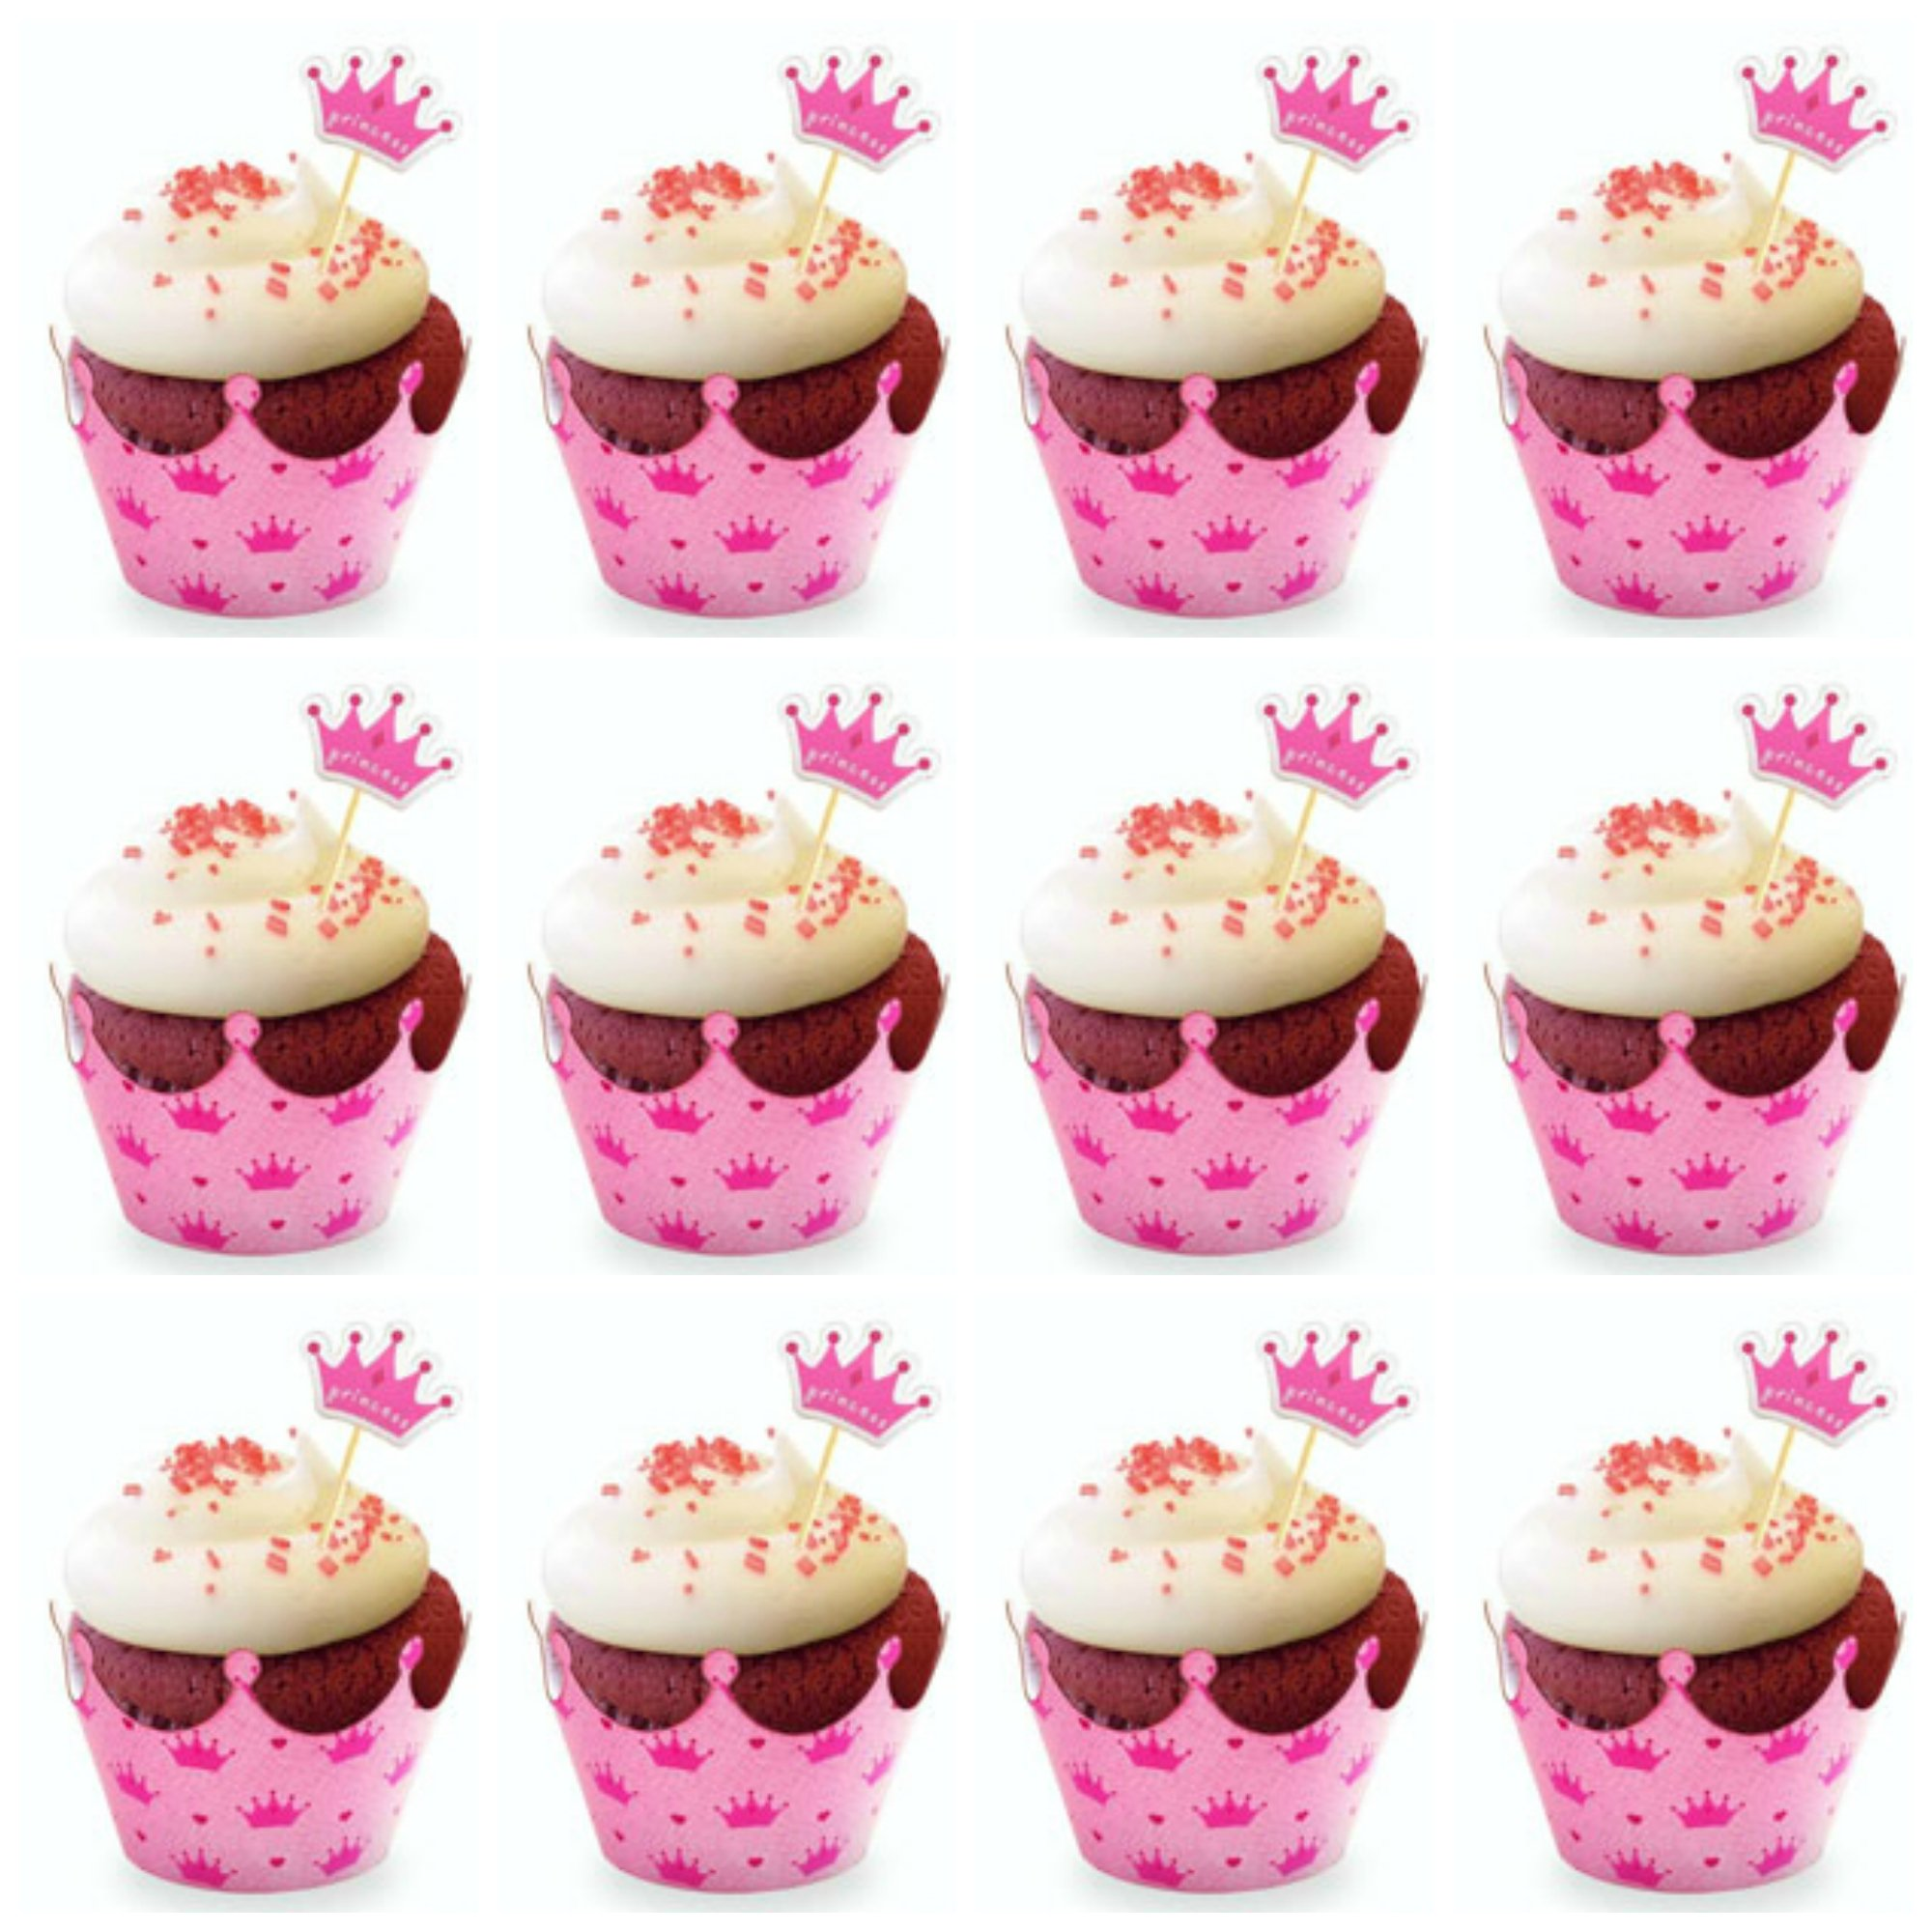 Cupcake Toppers and Wrappers for Girl Birthday – Crown Tiara Princess Party Cupcake Wrappers With Picks - Cupcake Kit – Cute Girl Party Supplies, Pink - NO Assembly Required – Set of 30 (Princess) by Craft And Party (Image #2)